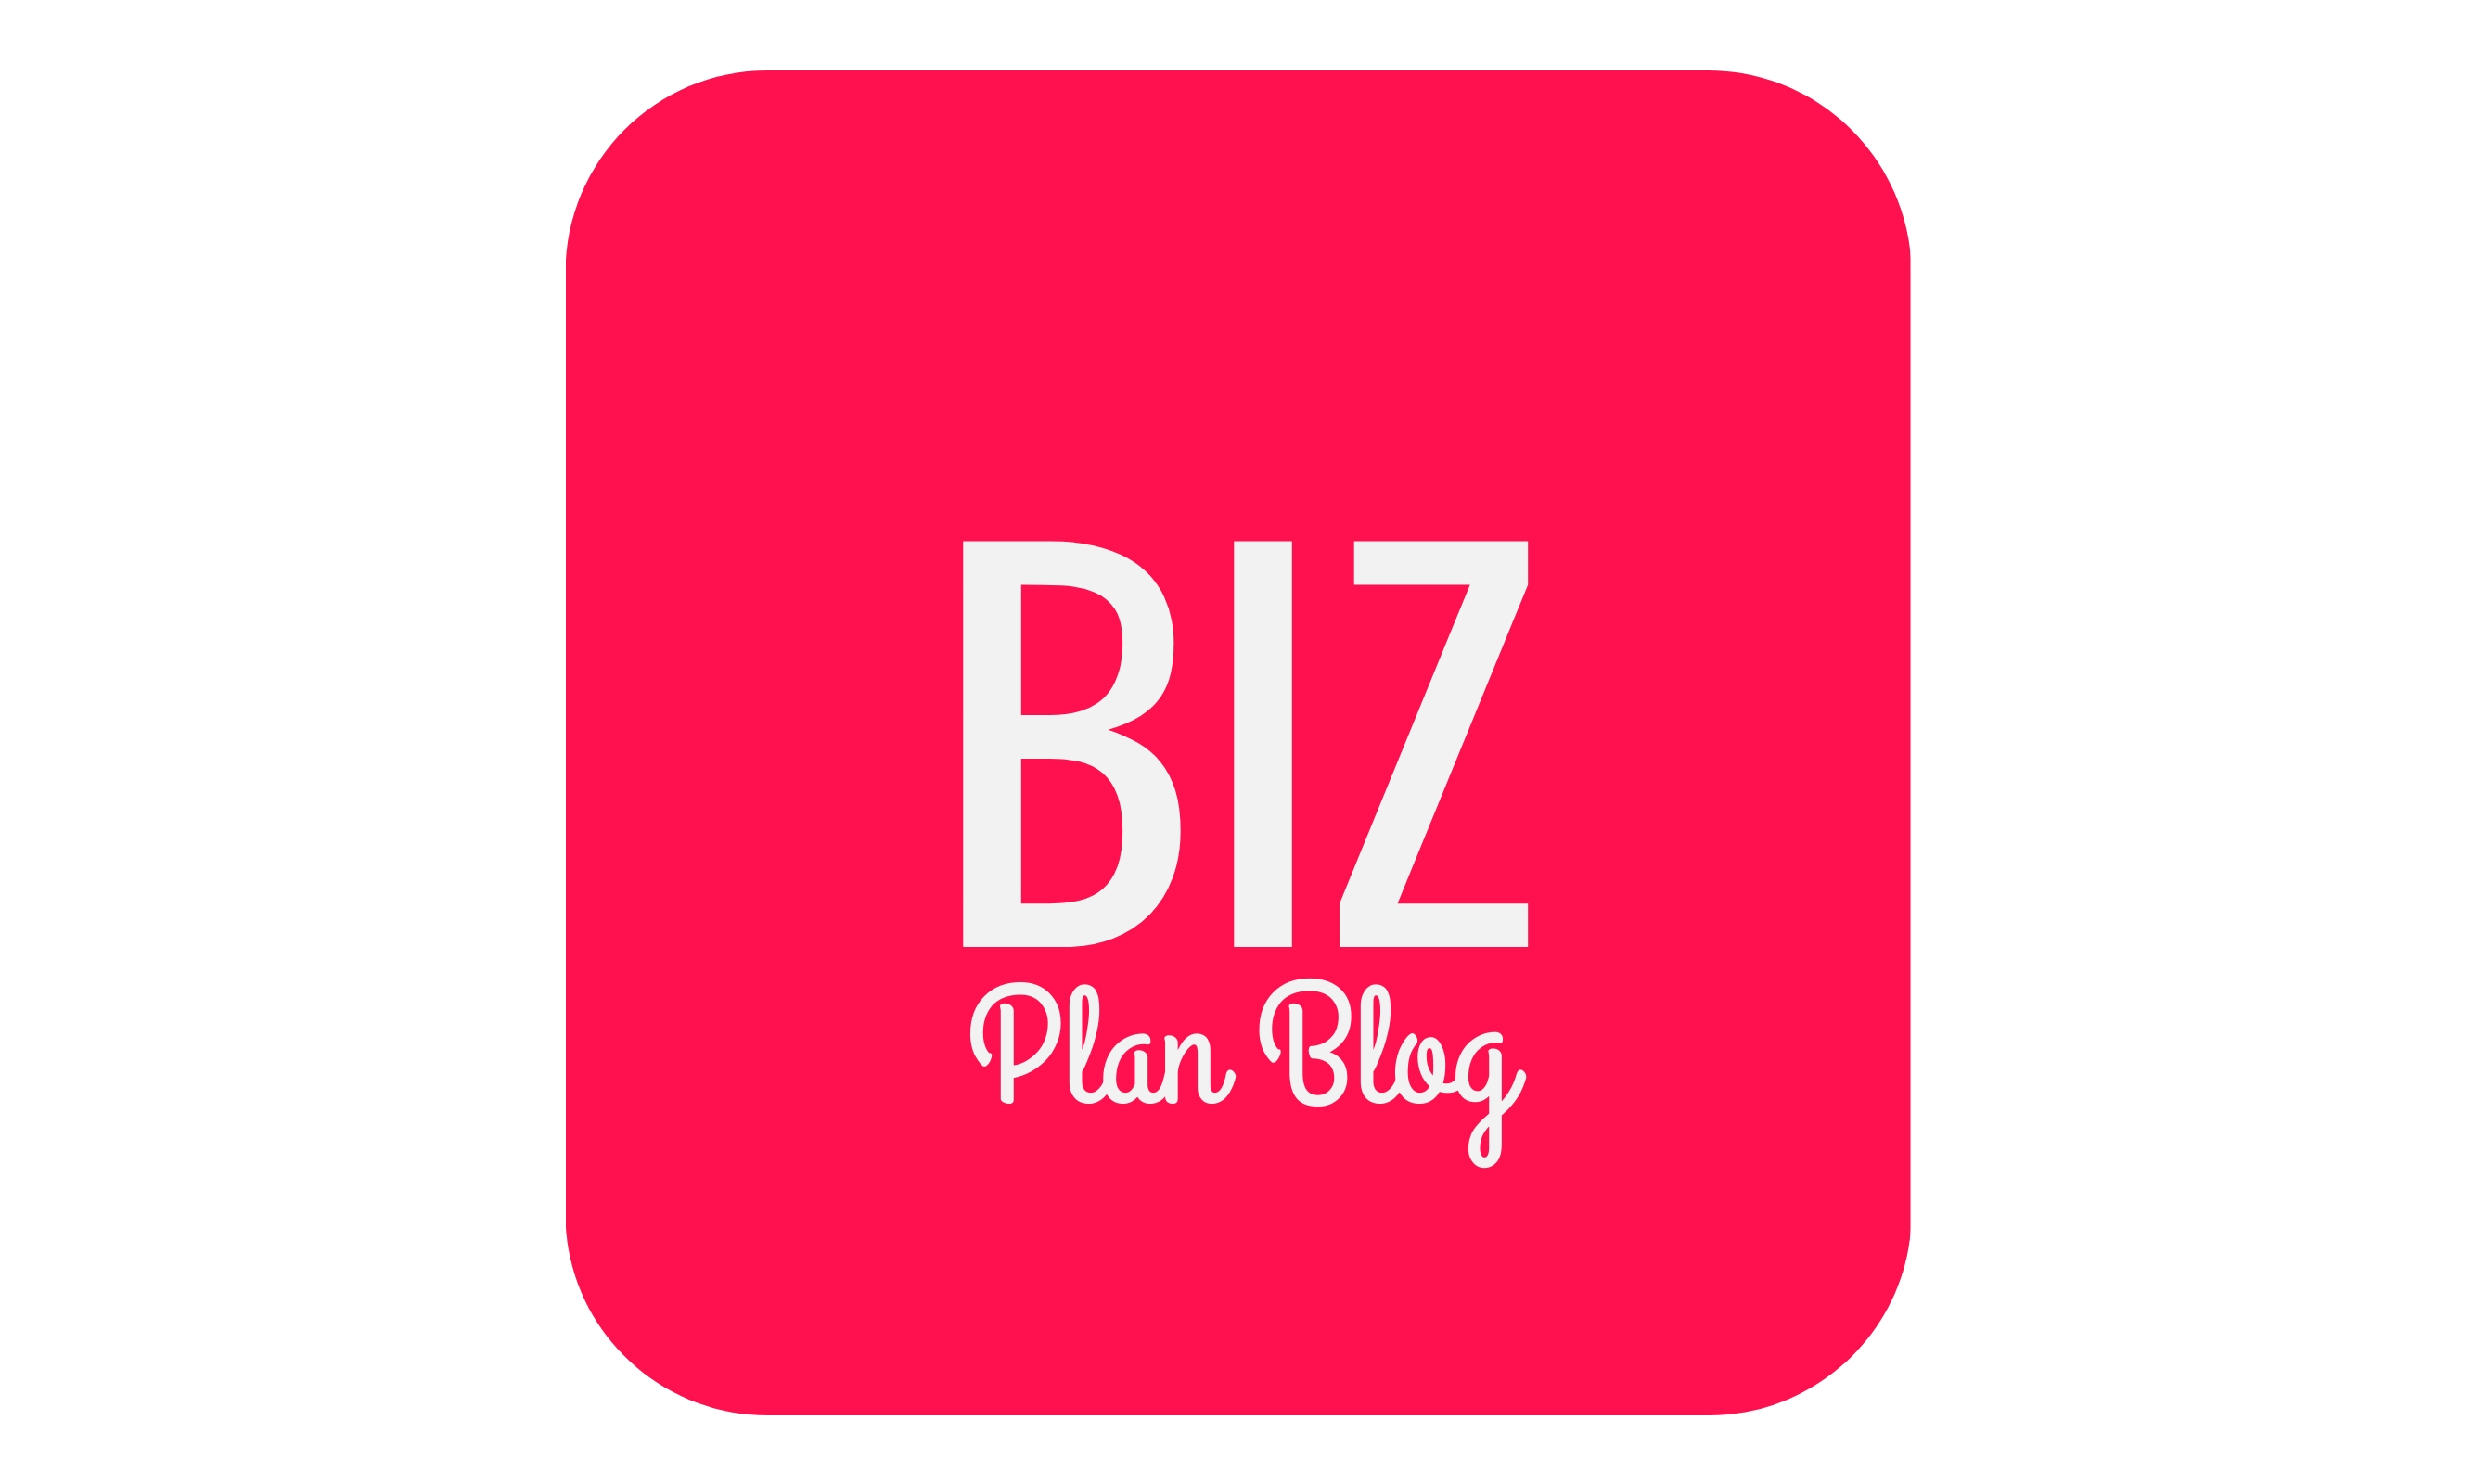 Business Plan Blog